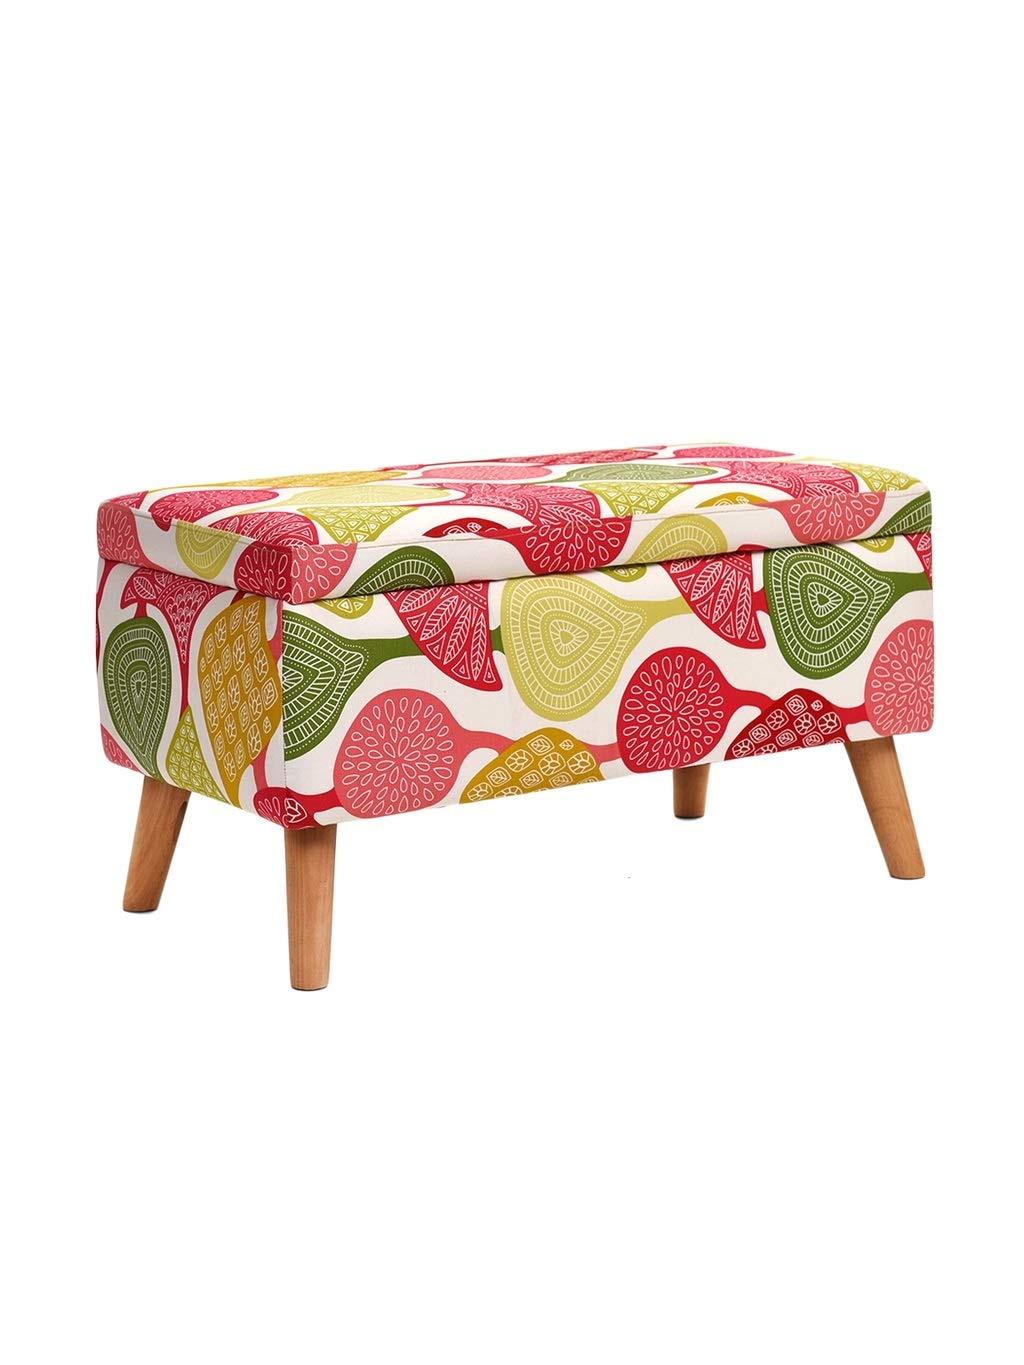 Flower Storage stool ZH STOOLS Sofa Stool, Solid Wood Small Bench Handmade Cotton Linen Multifunction Ergonomics Change shoes Stool for Living Room Entrance (color   Lattice, Size   Storage Stool)